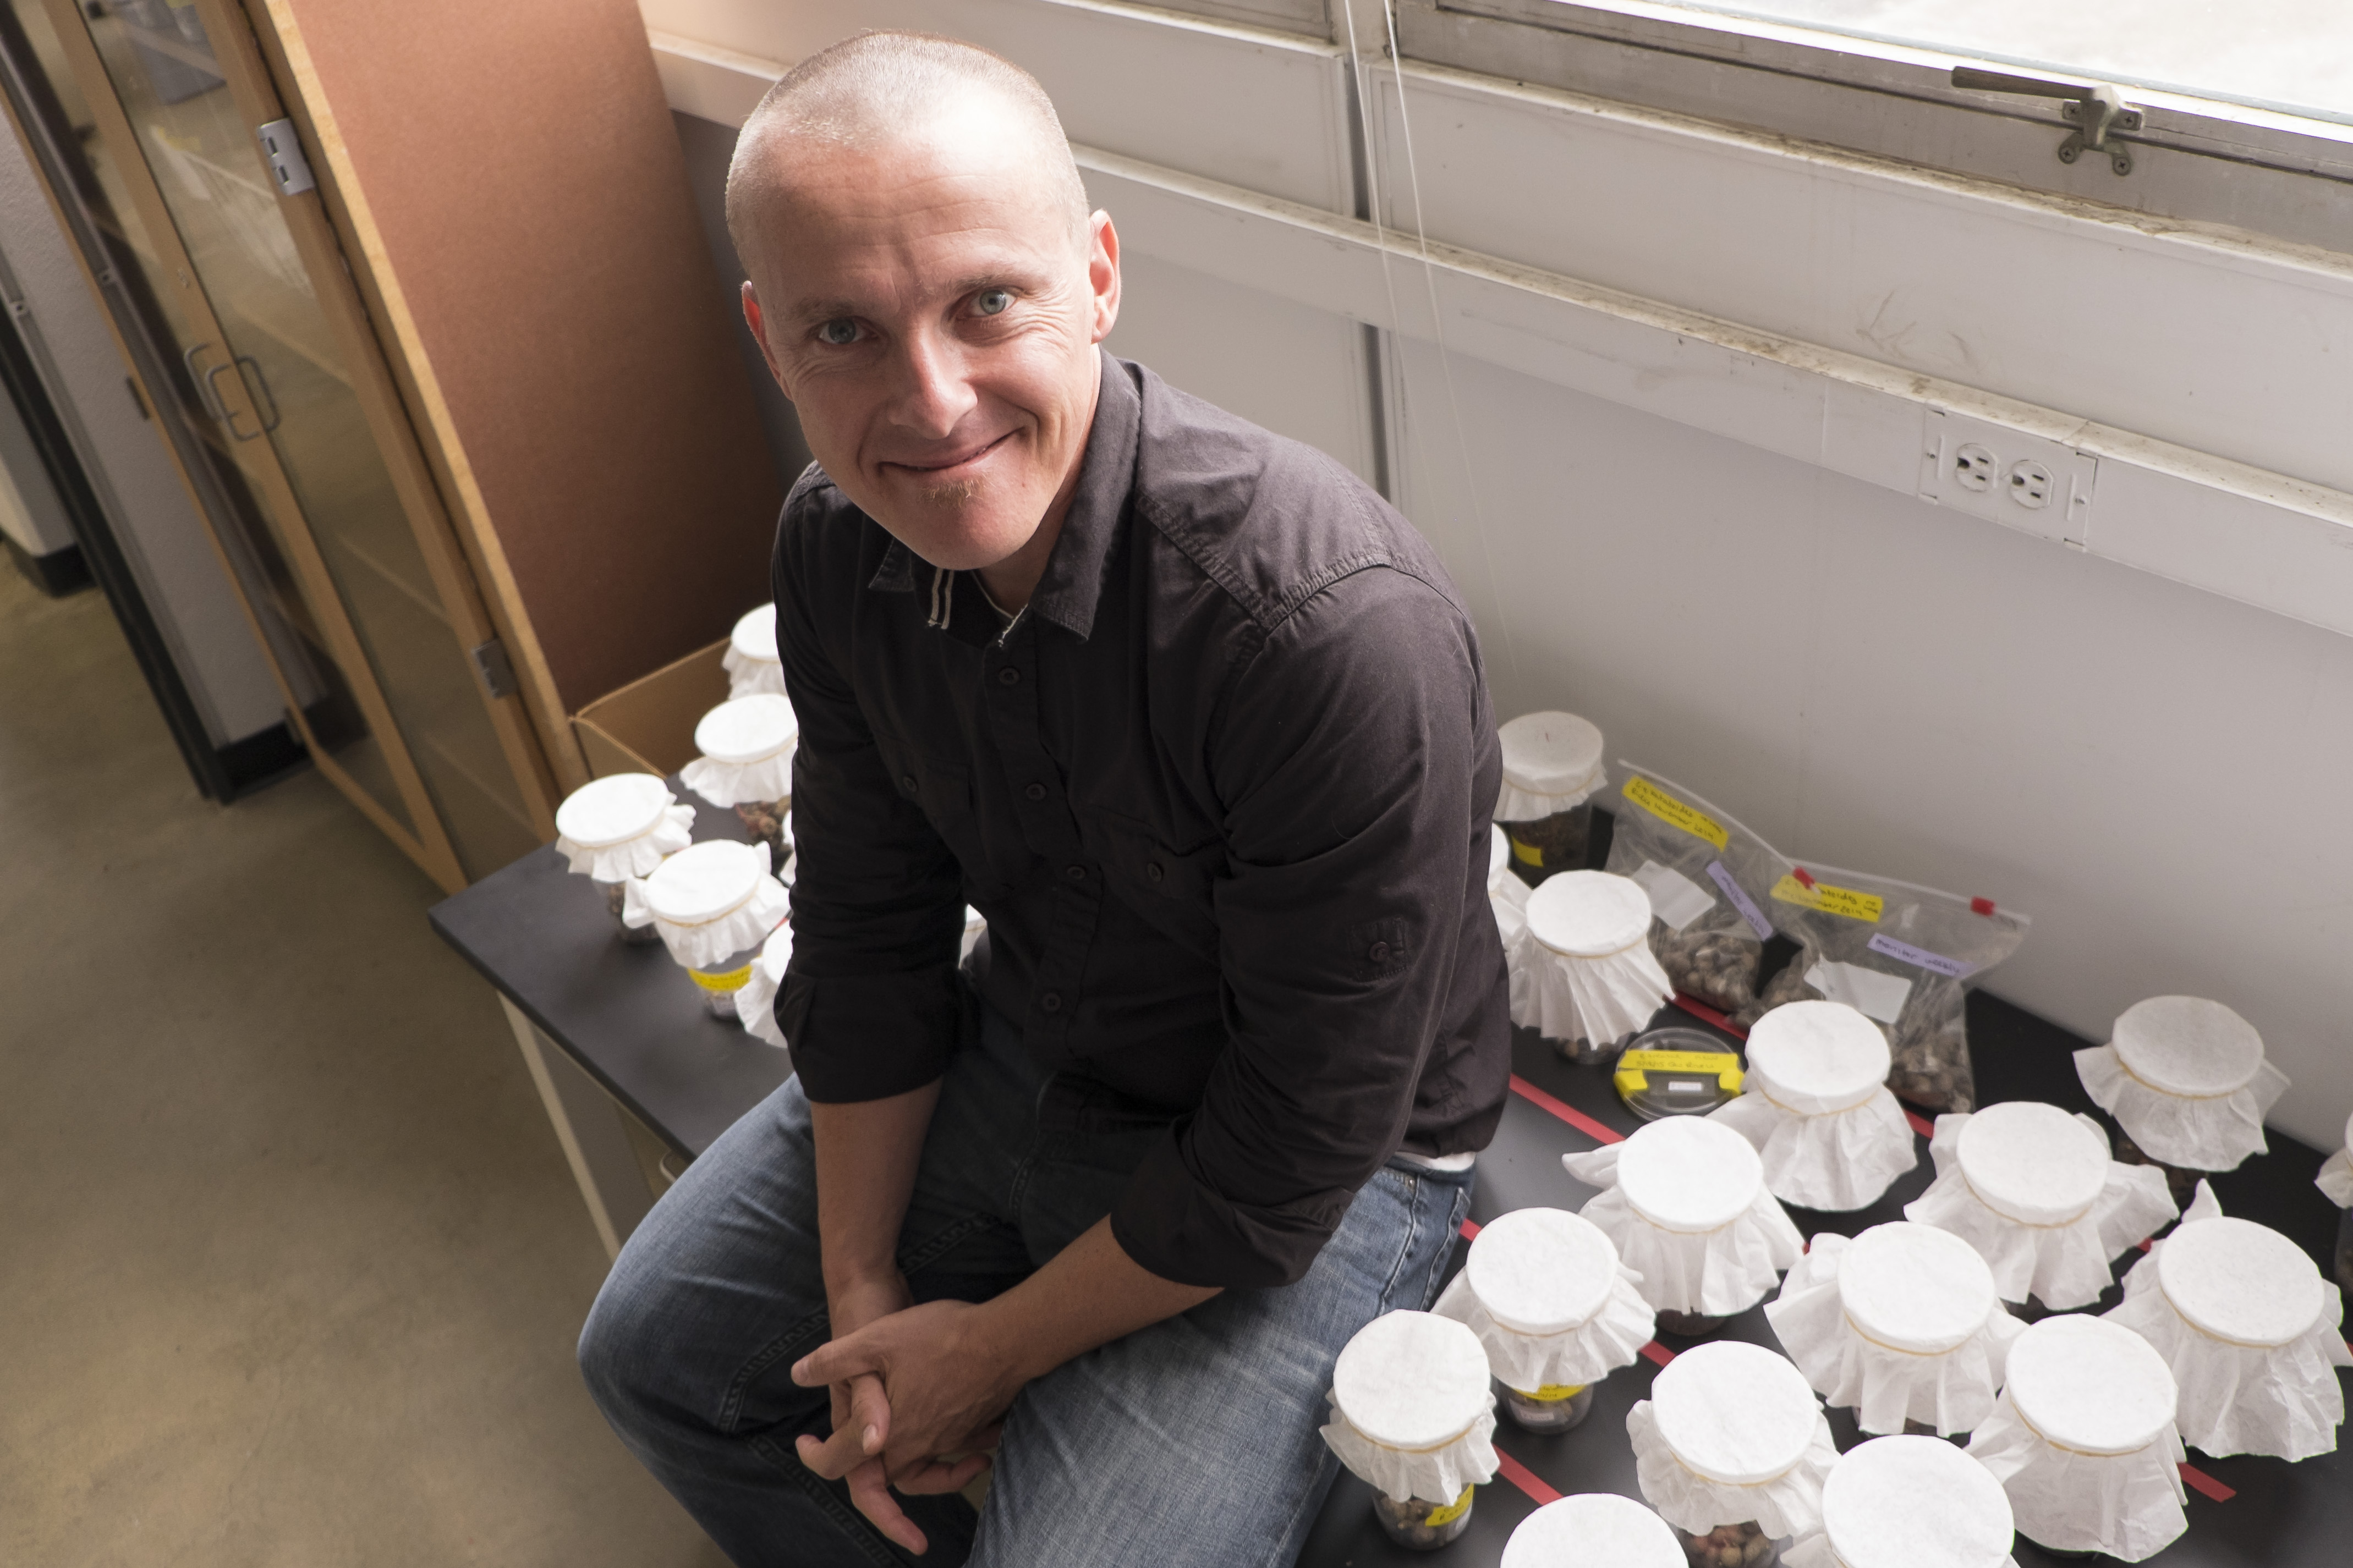 Scott Egan, an assistant professor of biosciences at Rice University, is leading a project to develop technology that will monitor and quantify genetically engineered organisms and their byproducts in the environment. ( Jeff Fitlow/Rice University)